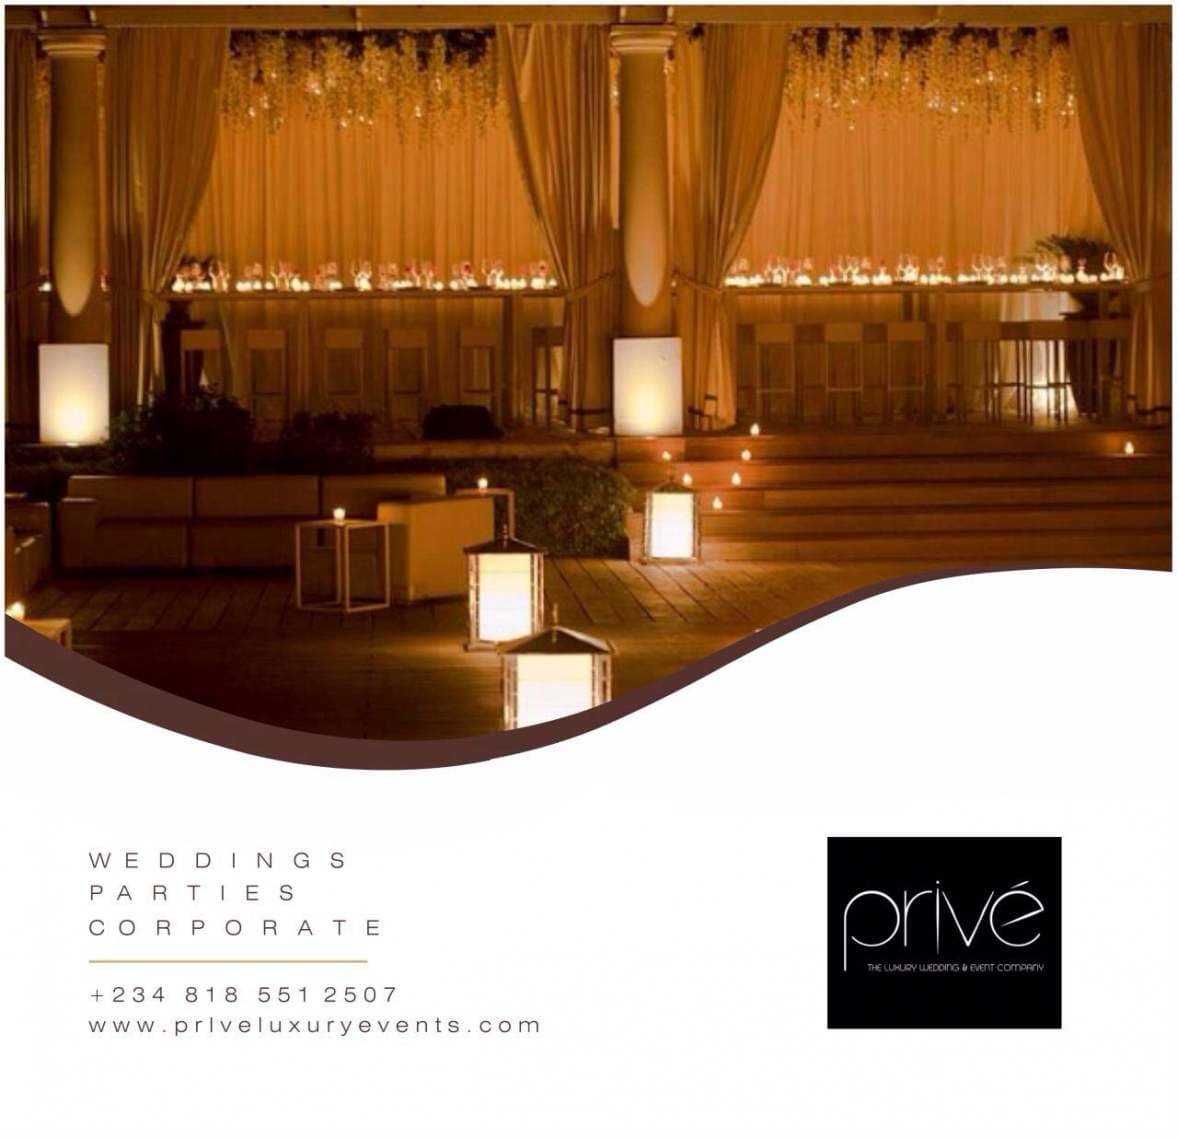 Elohor Aisien Officially Launches Privé Luxury Events